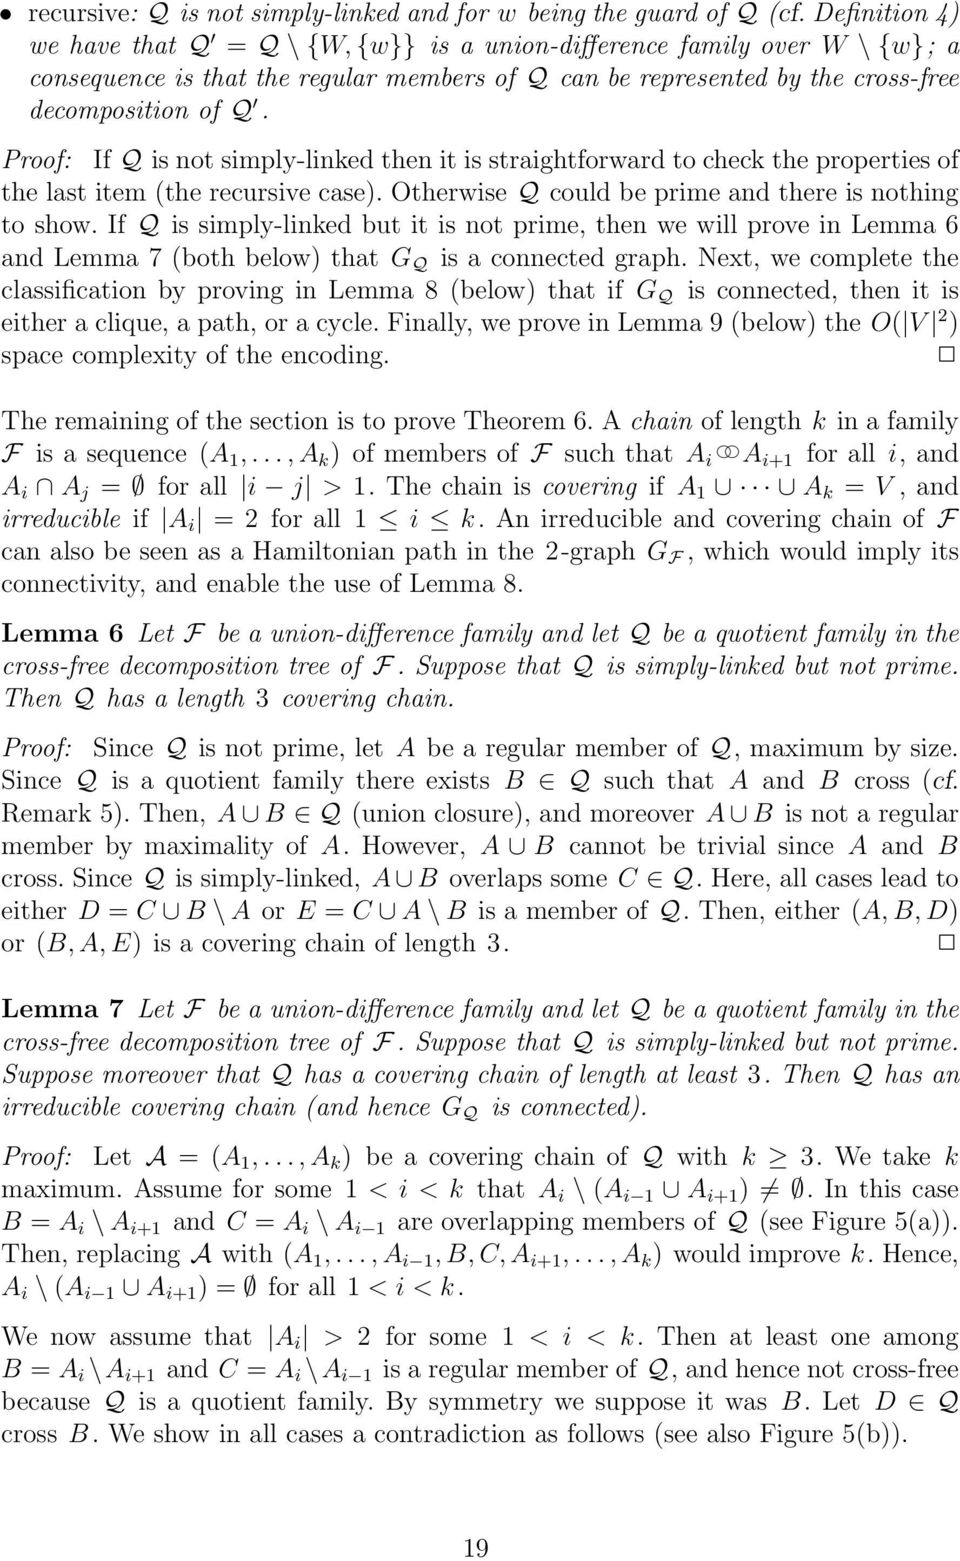 Proof: If Q is not simply-linked then it is straightforward to check the properties of the last item (the recursive case). Otherwise Q could be prime and there is nothing to show.